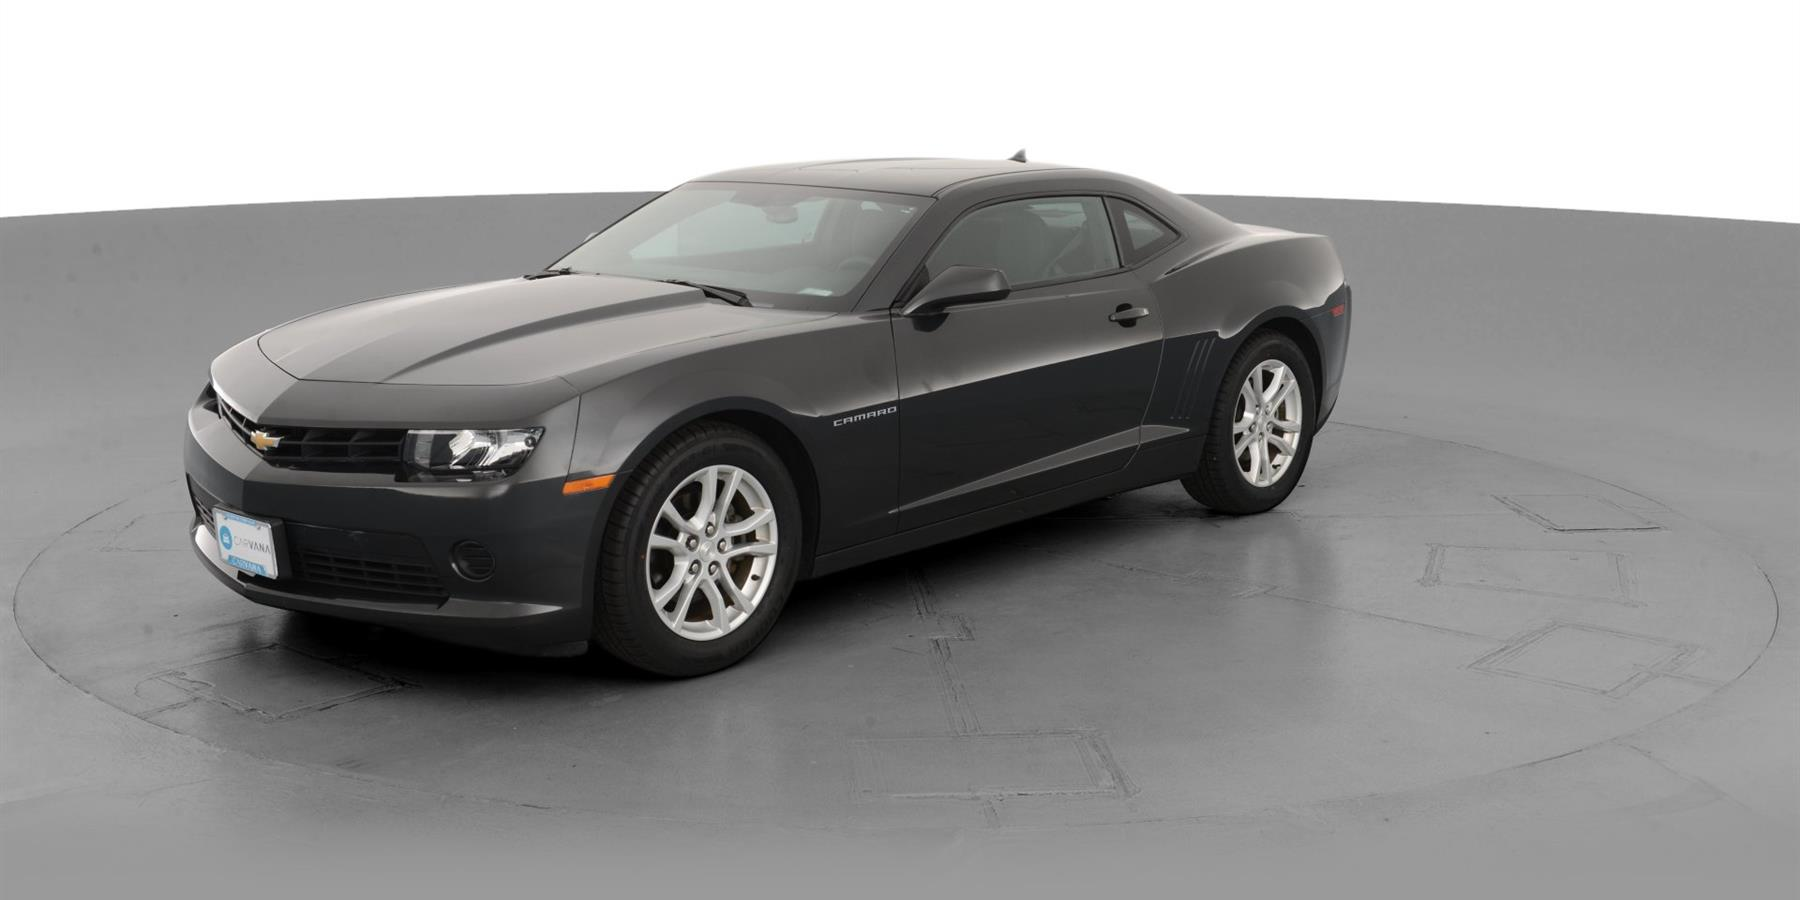 2015 Chevrolet Camaro Ls Coupe 2d For Sale Carvana